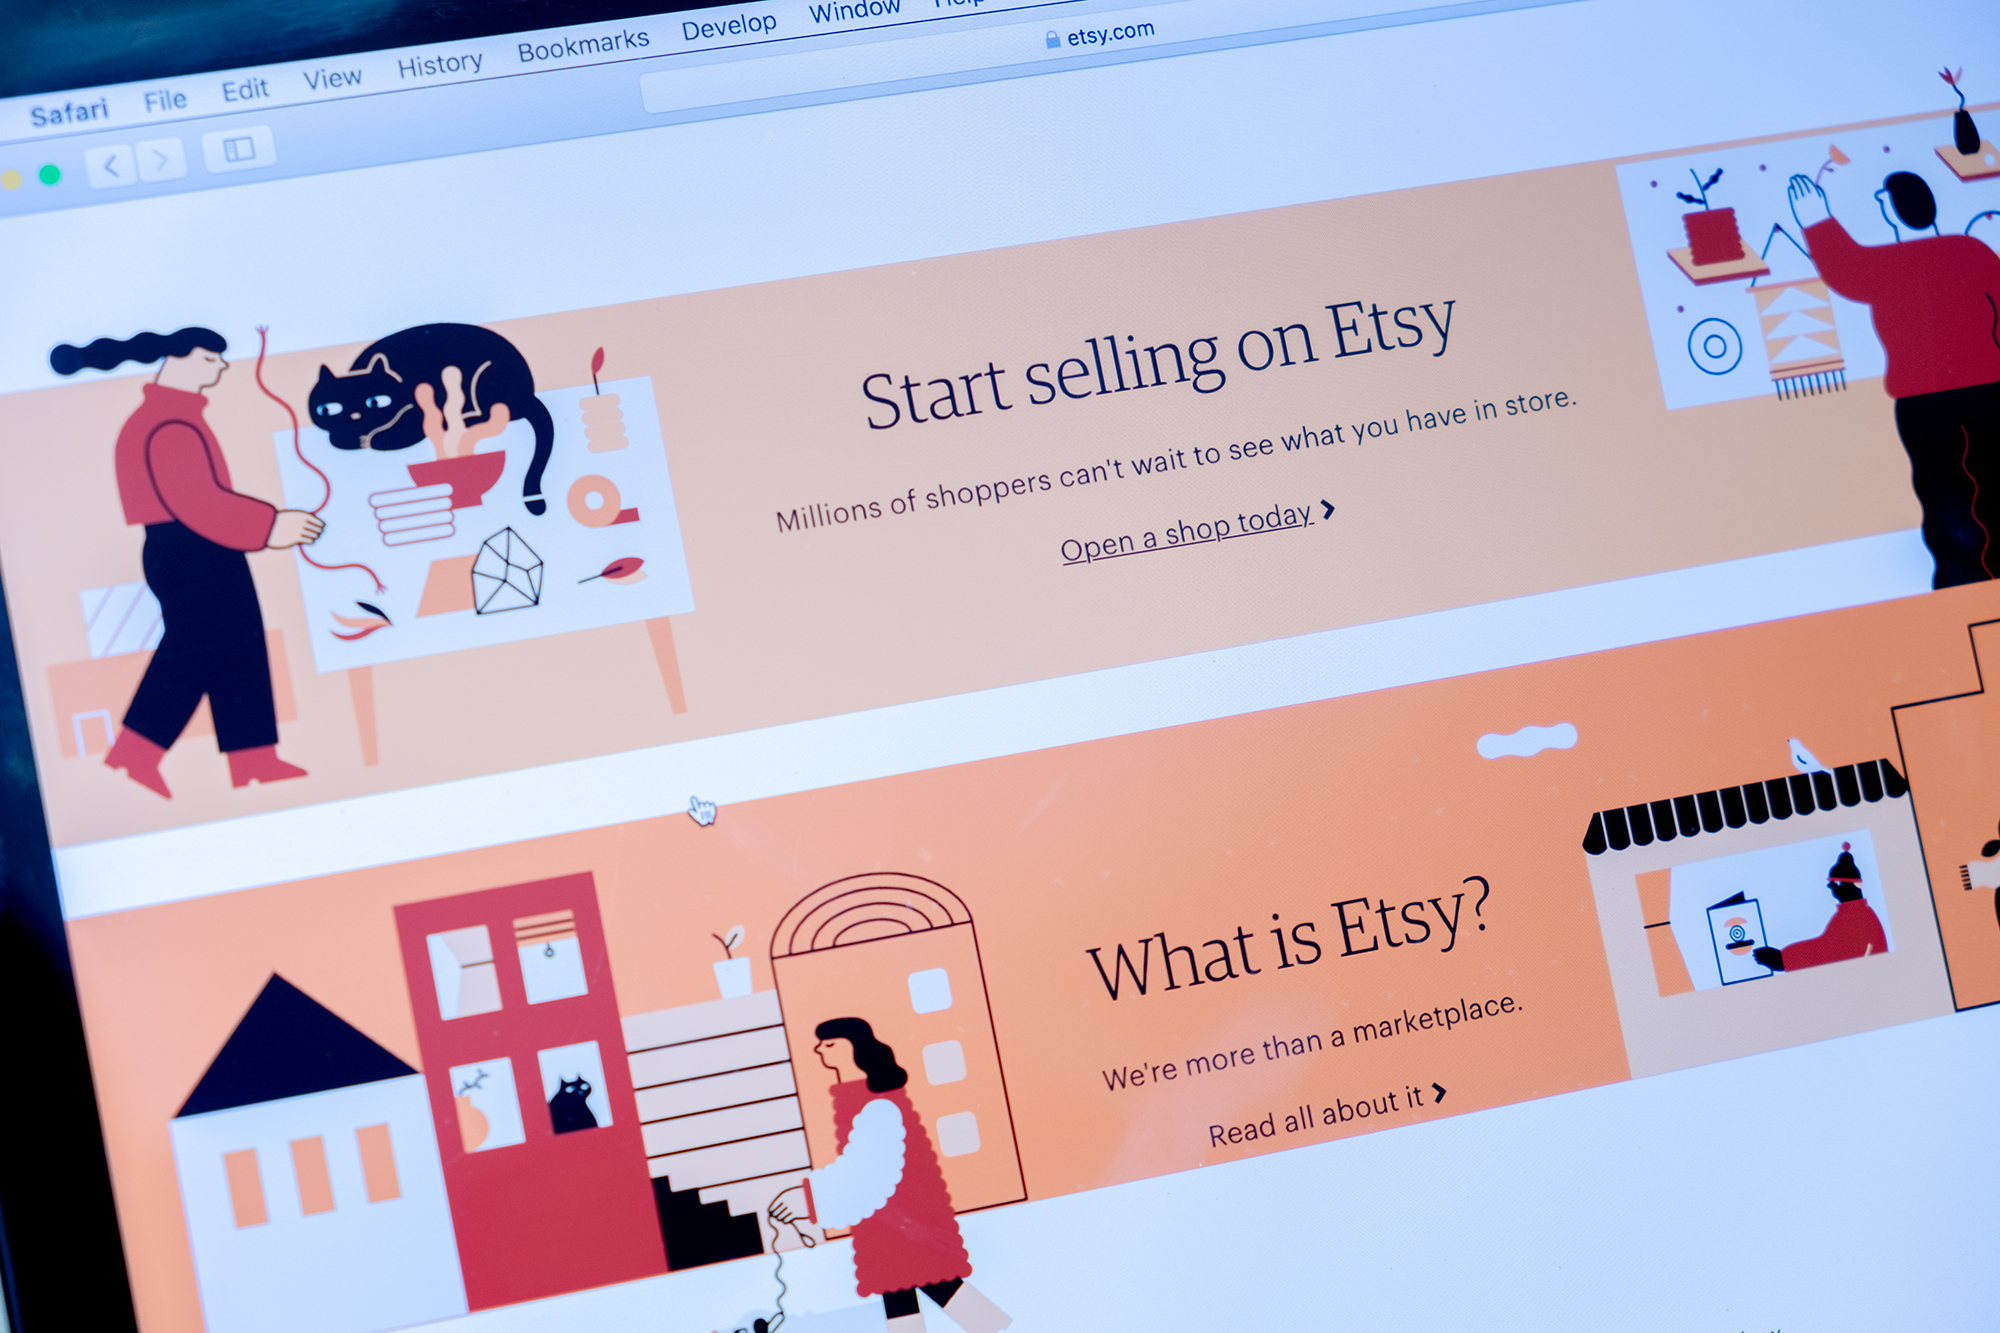 Etsy website. (Image: Shutterstock/justplay1412)